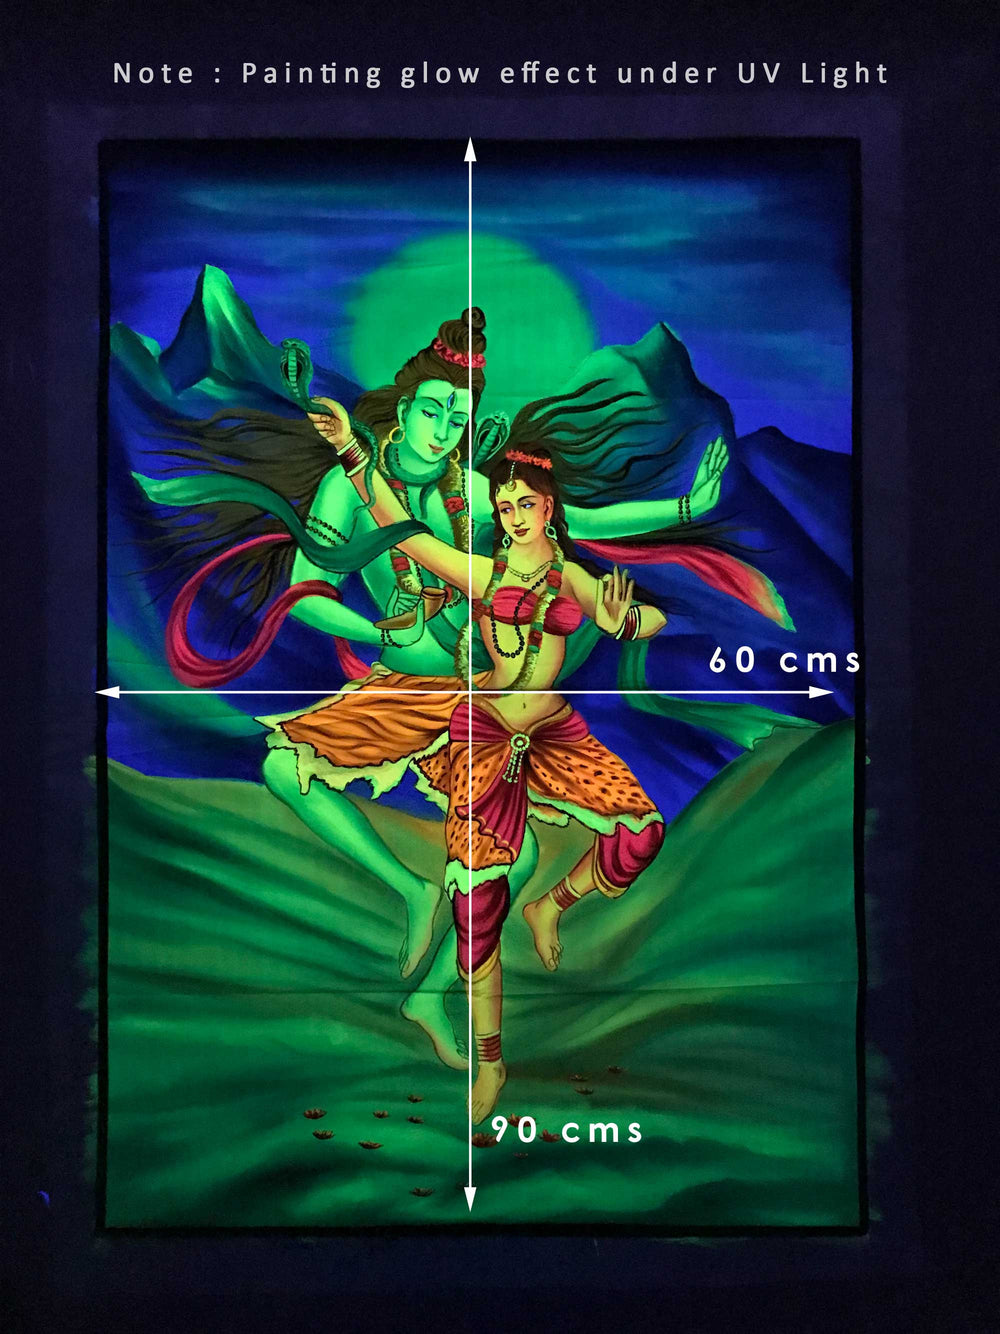 UV Glow Lord Shiva and Parvati painting made from fluorescent colors